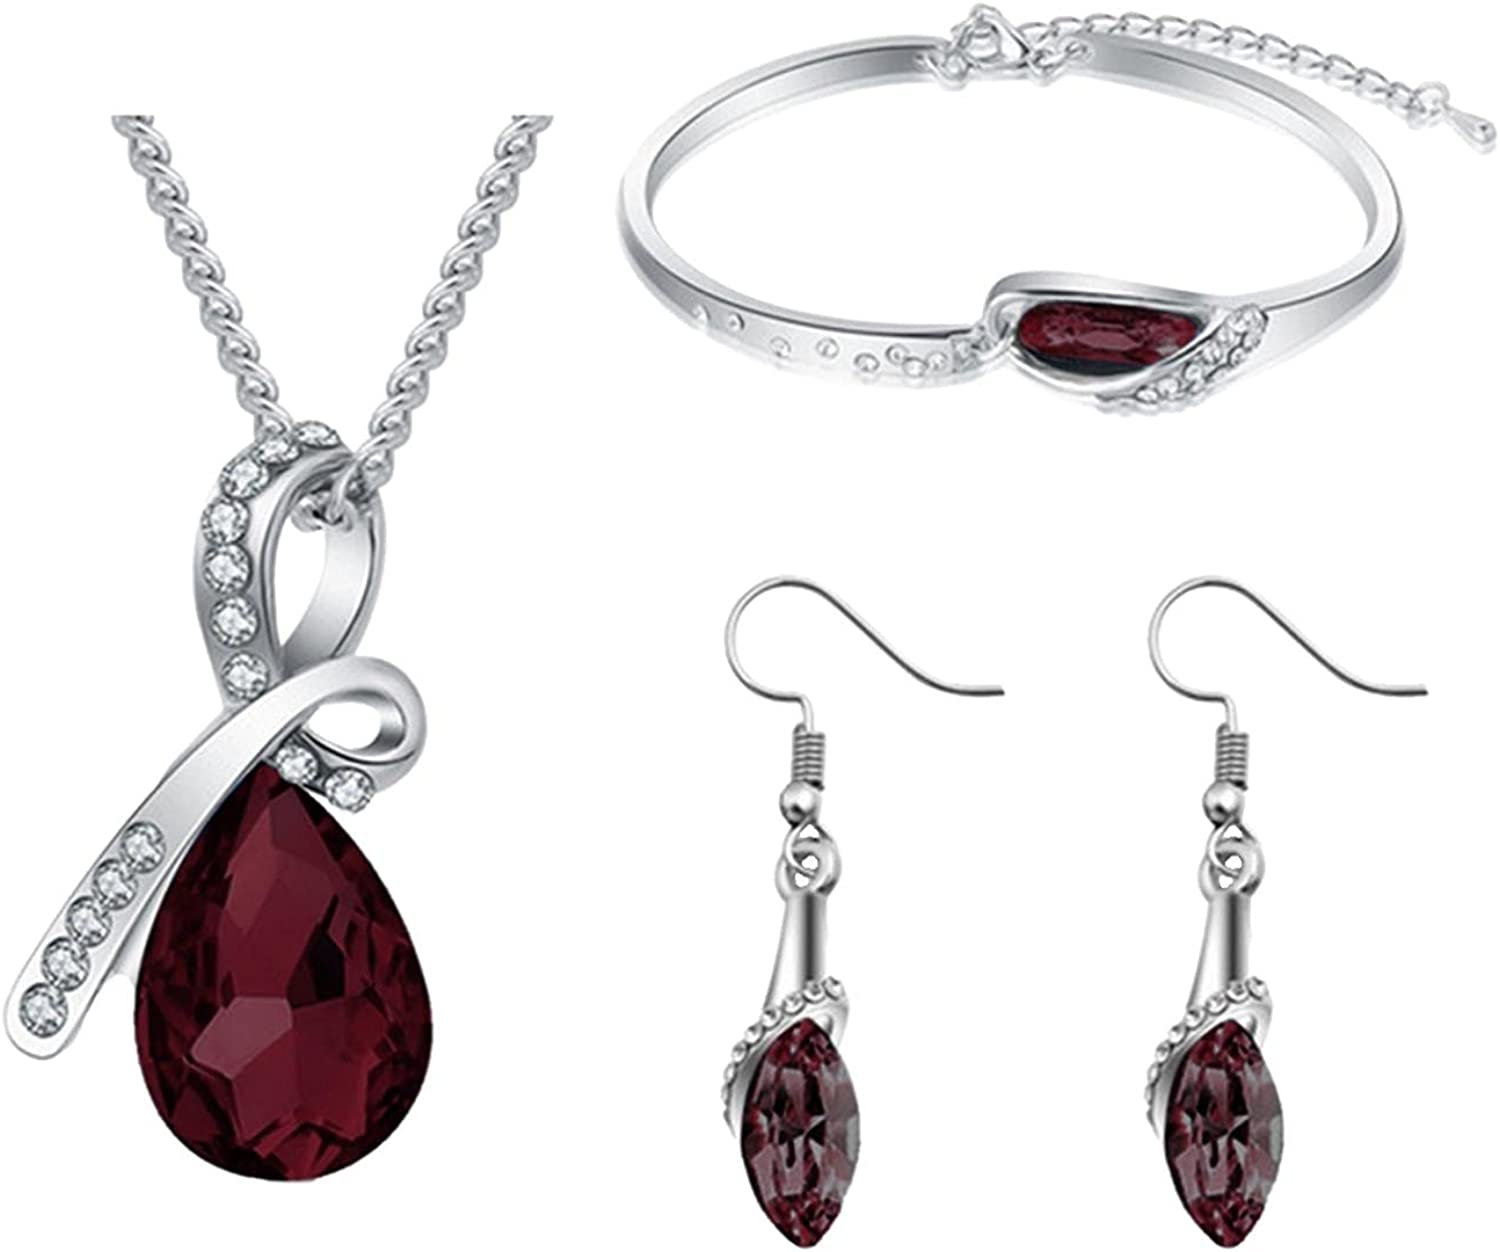 Women's Jewelry Set Personality Max 47% sold out OFF Classic Style Necklace Crystal E